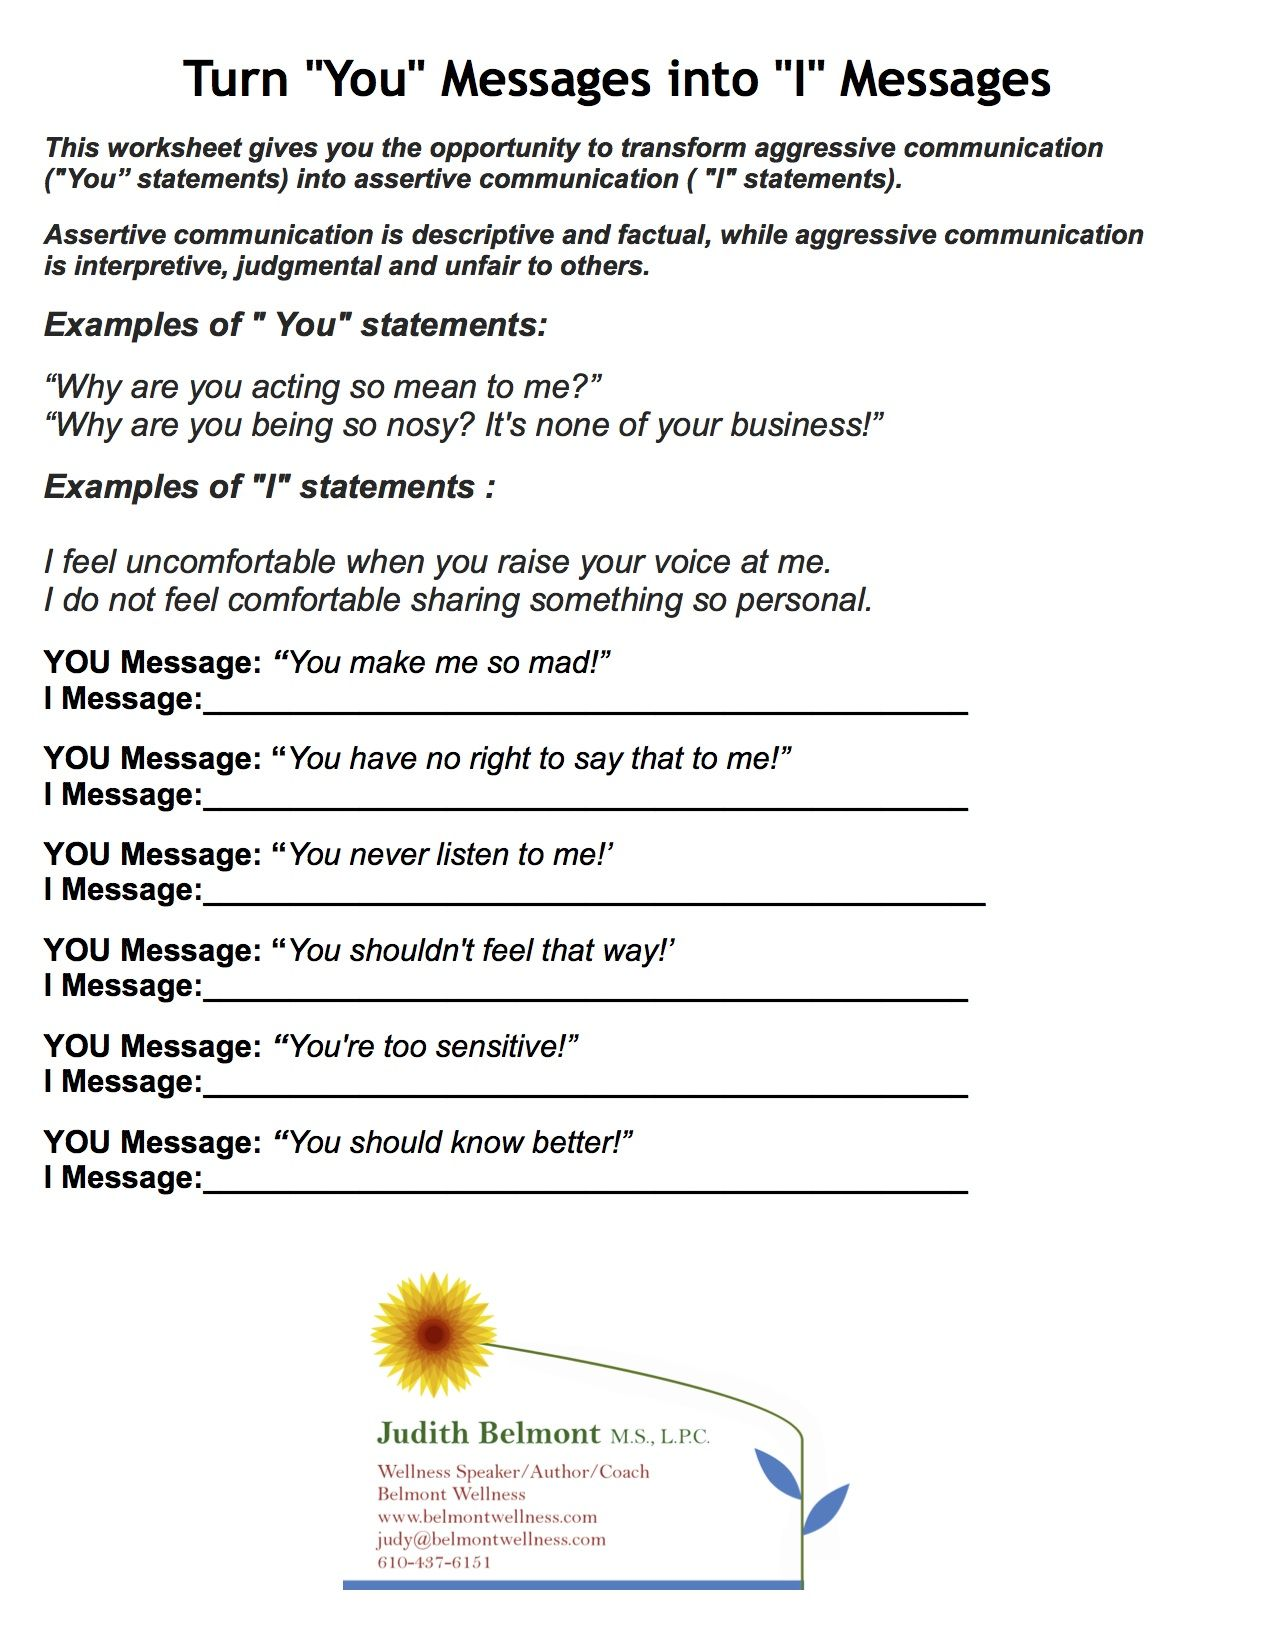 worksheet Communication Skills Worksheets For Adults these are games and activities that great for team building communication skills